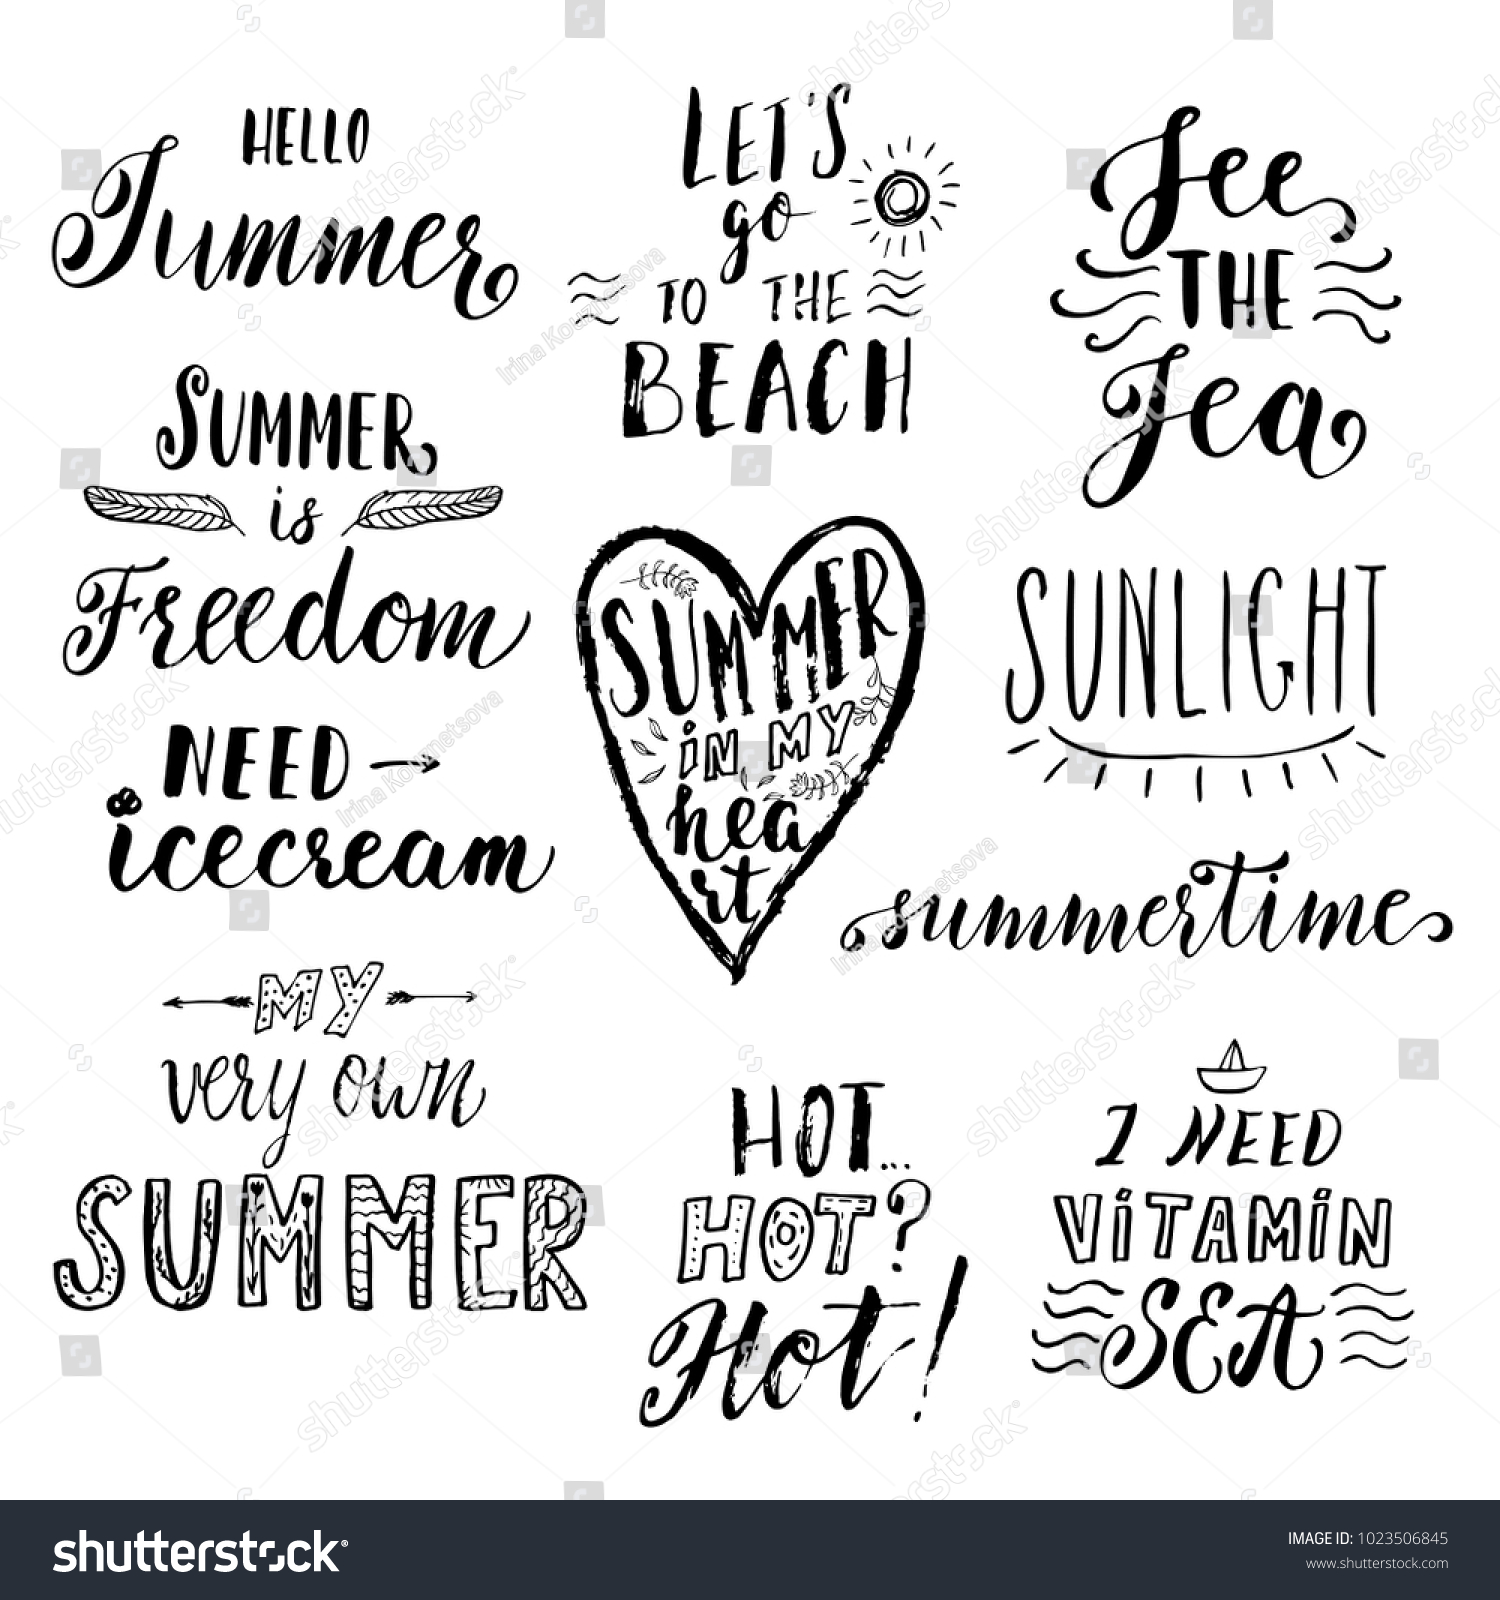 Summer Hand Drawn Lettering Inspirational Quotes Stock Vector